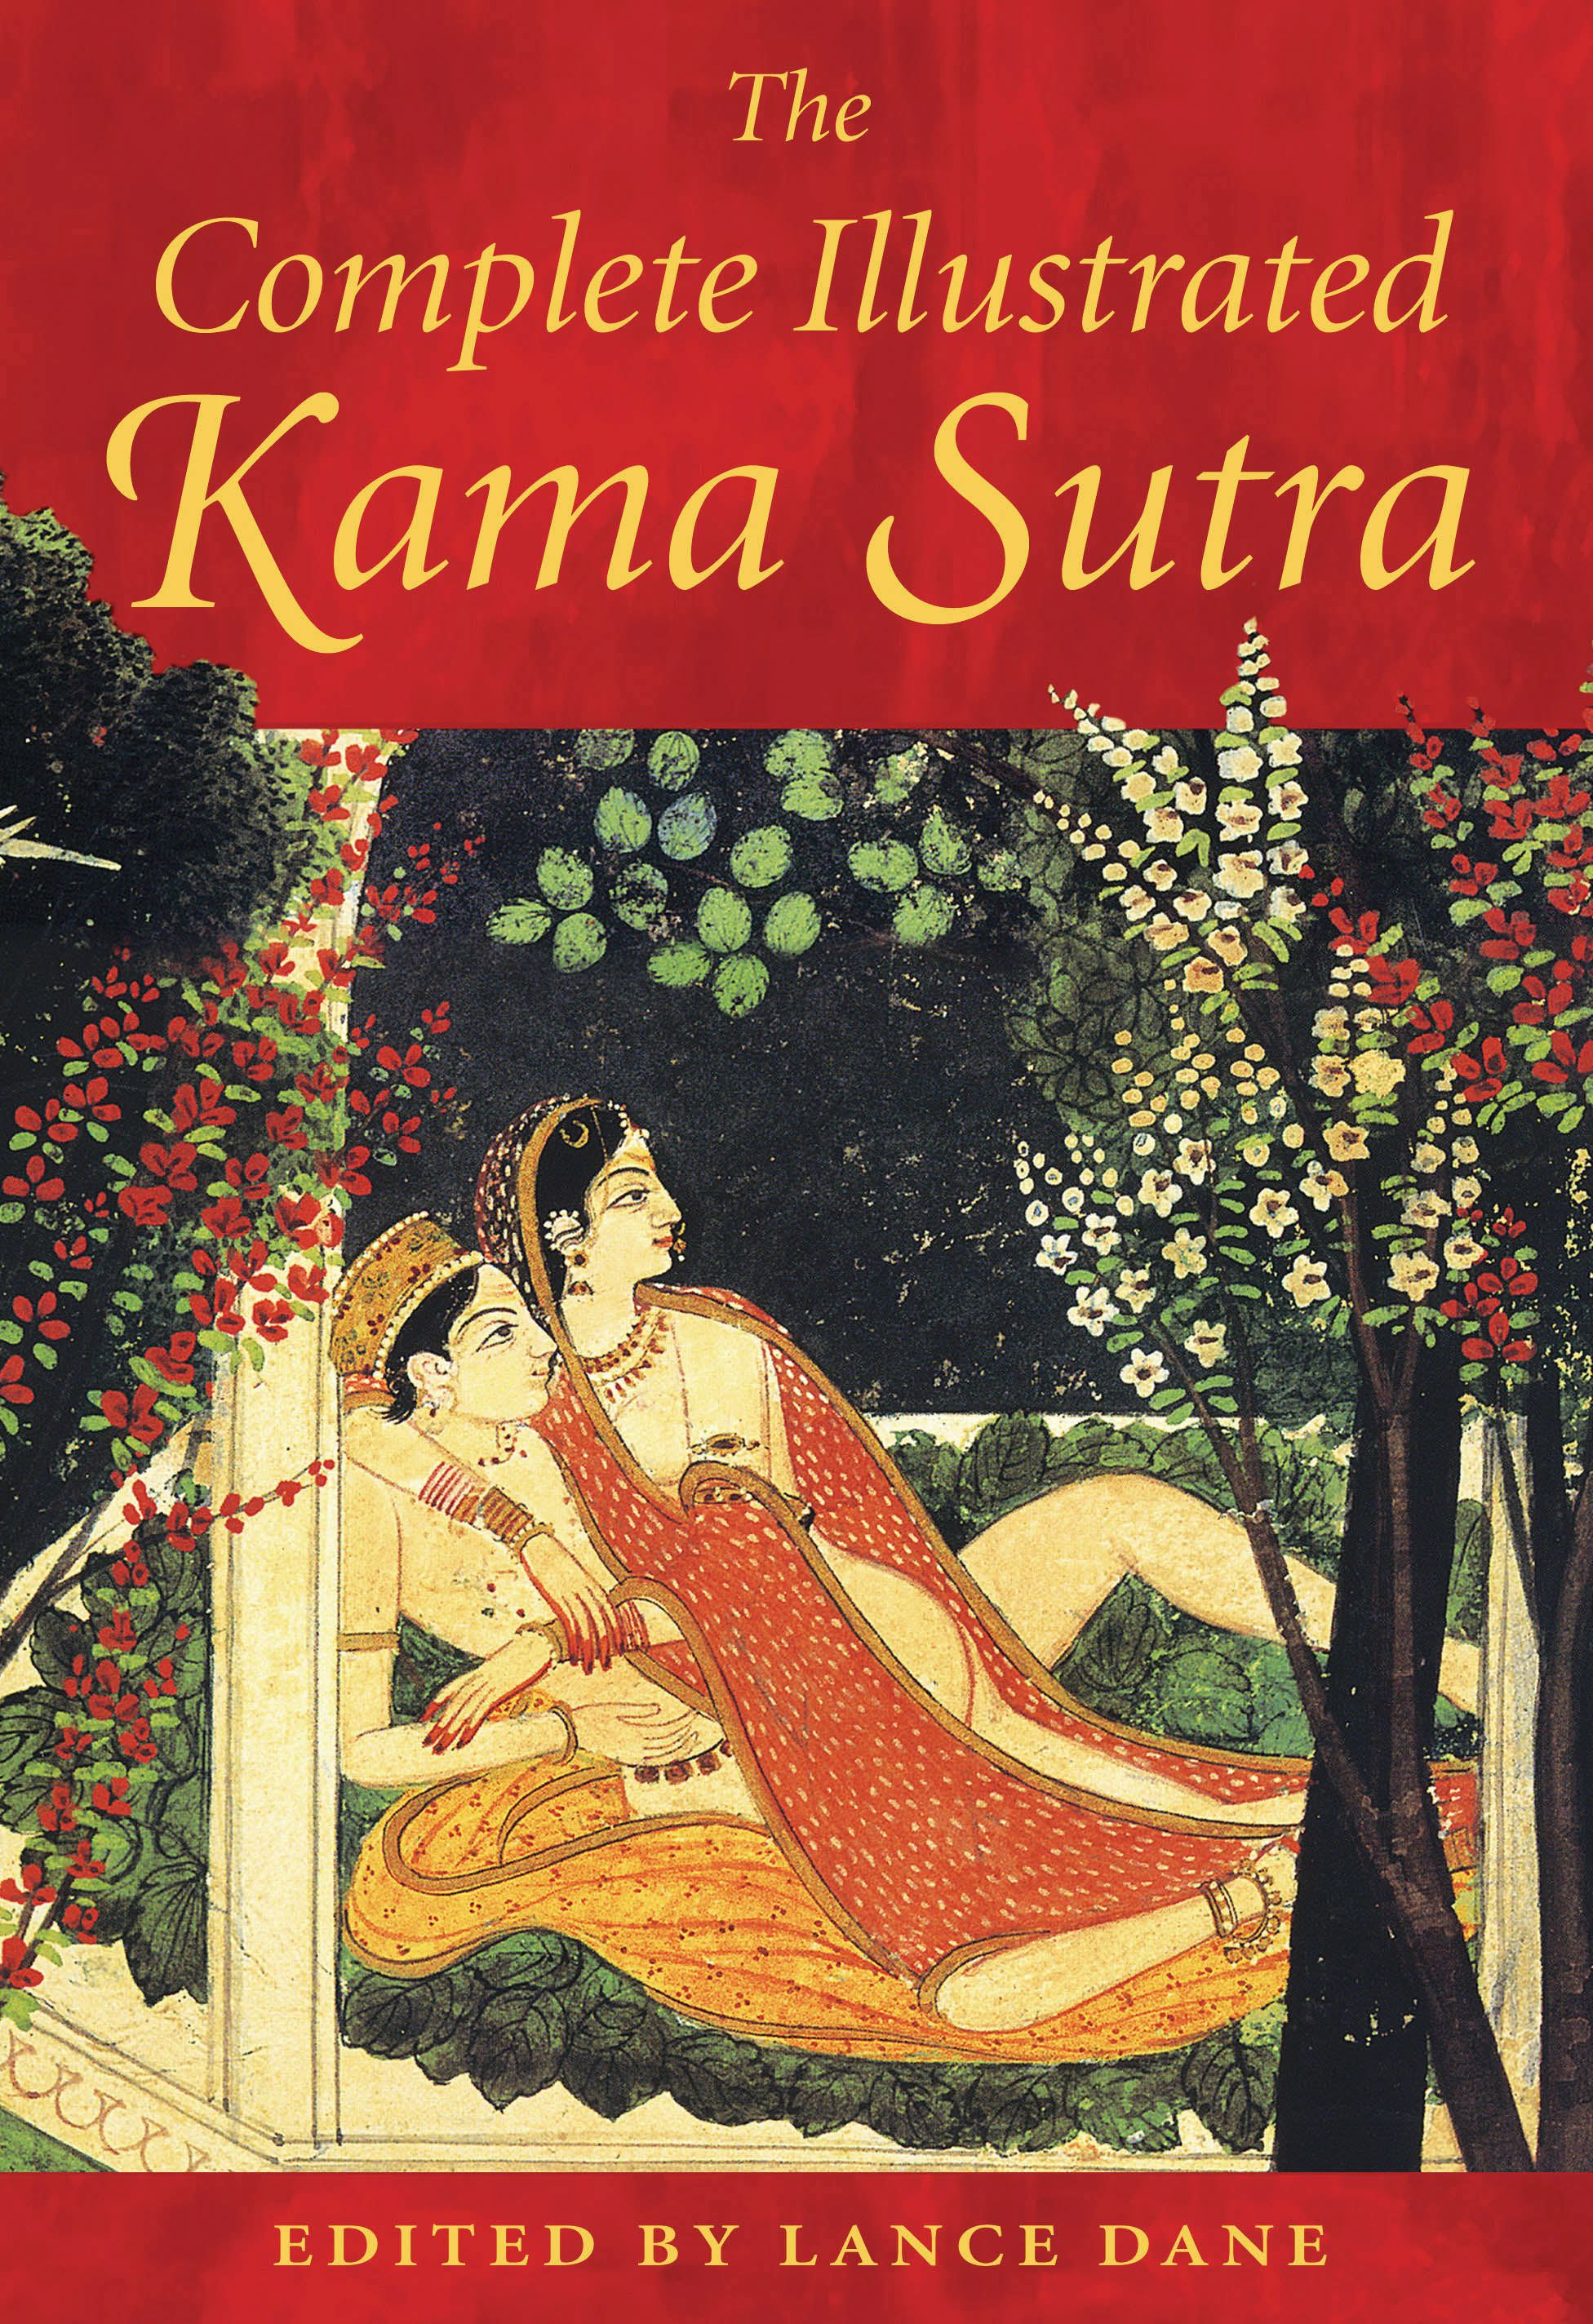 Libro Kamasutra The Complete Illustrated Kama Sutra Book By Lance Dane